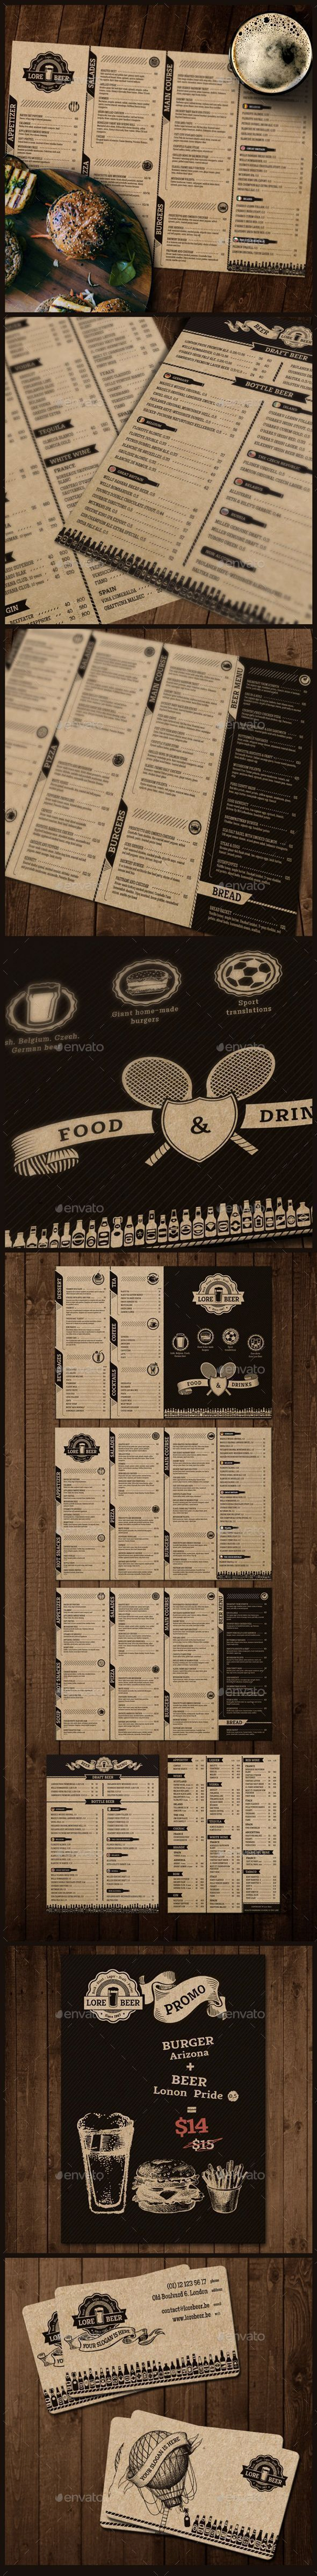 Lore Beer Pub Template #design #alimentationmenu Download: http://graphicriver.net/item/lore-beer-pub/12239806?ref=ksioks